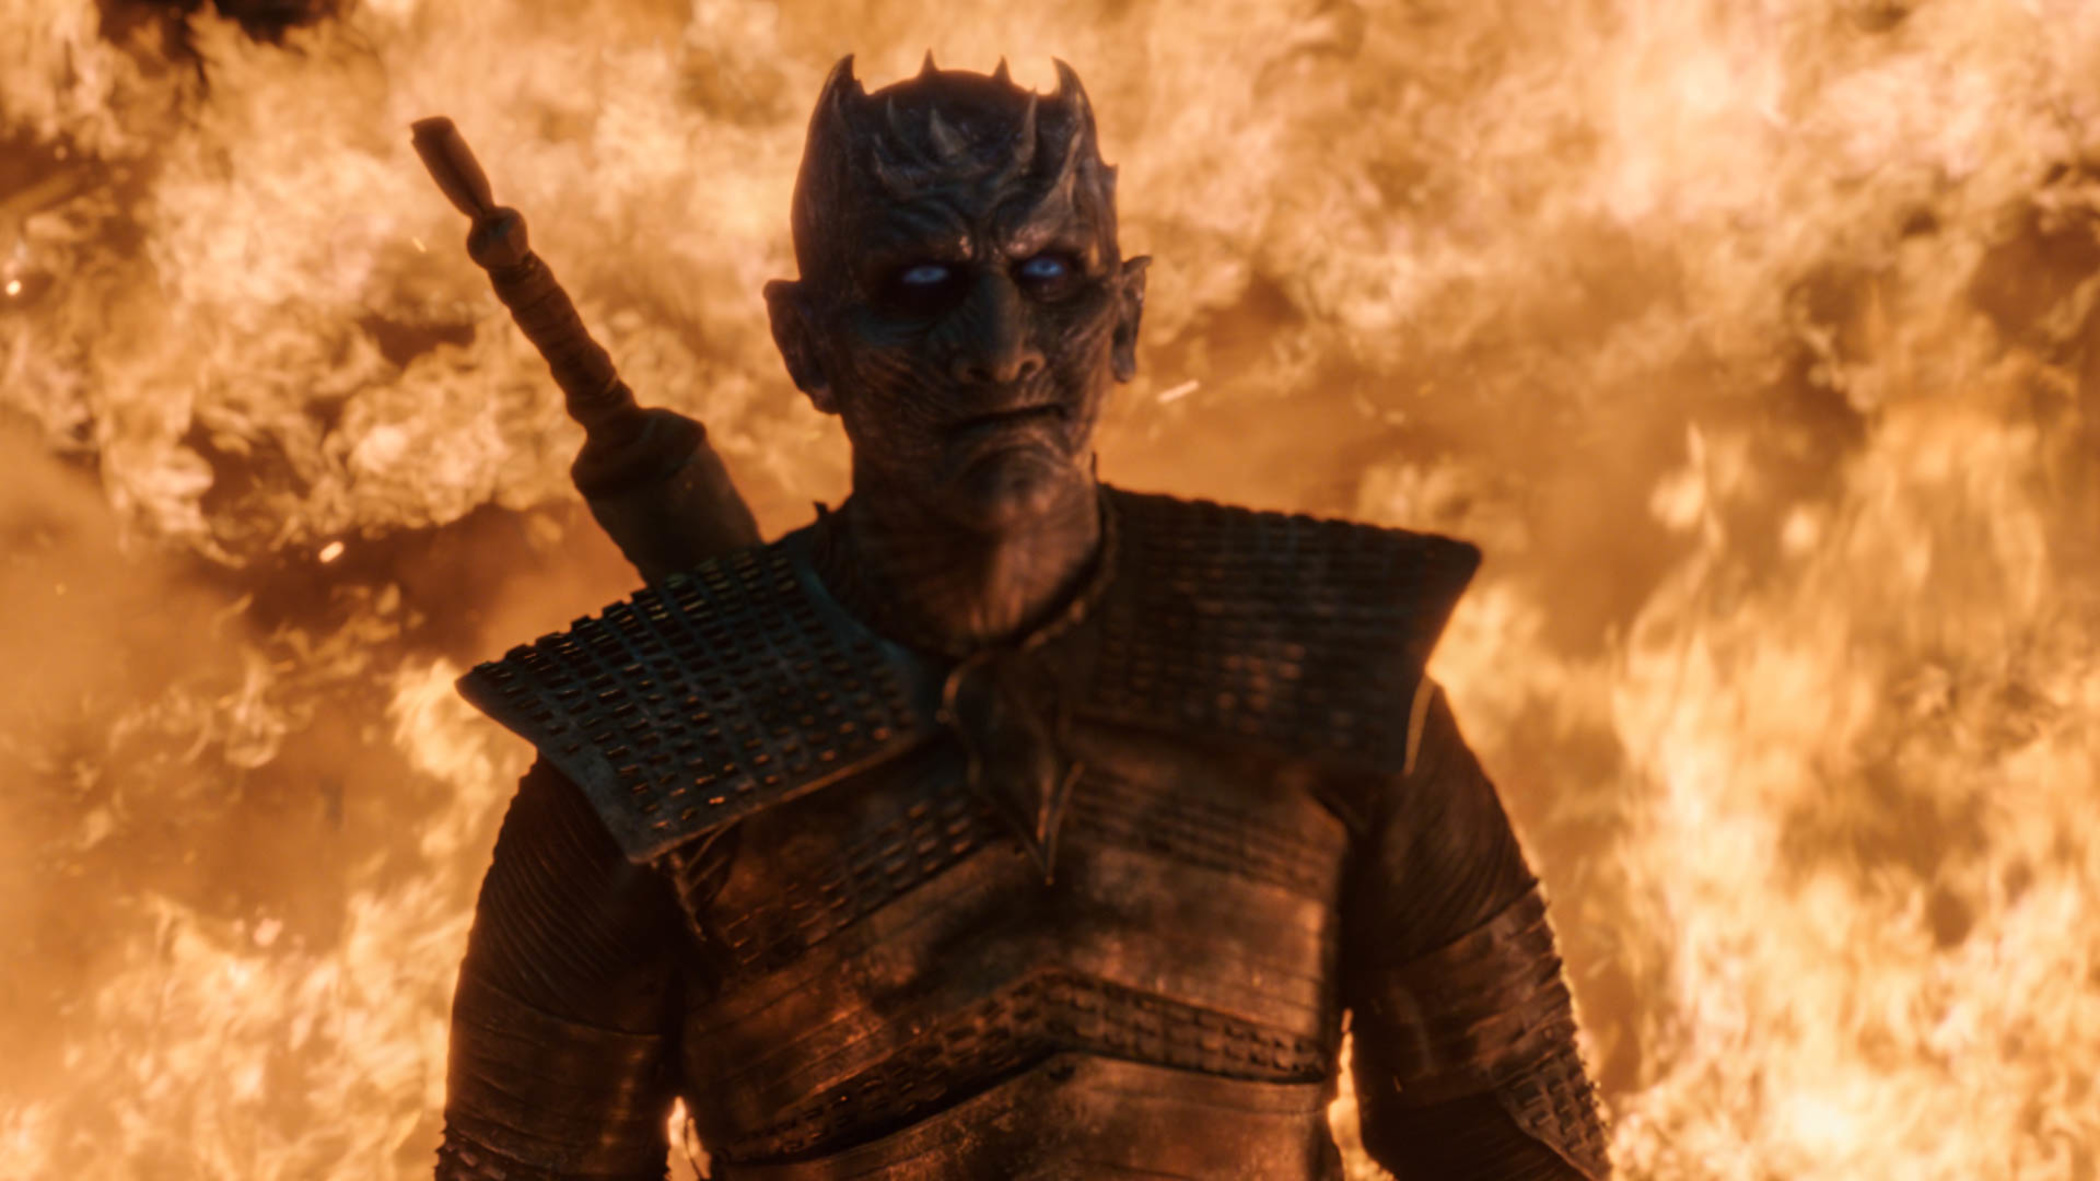 HBO's Game of Thrones prequel series and spinoffs: everything we know so far